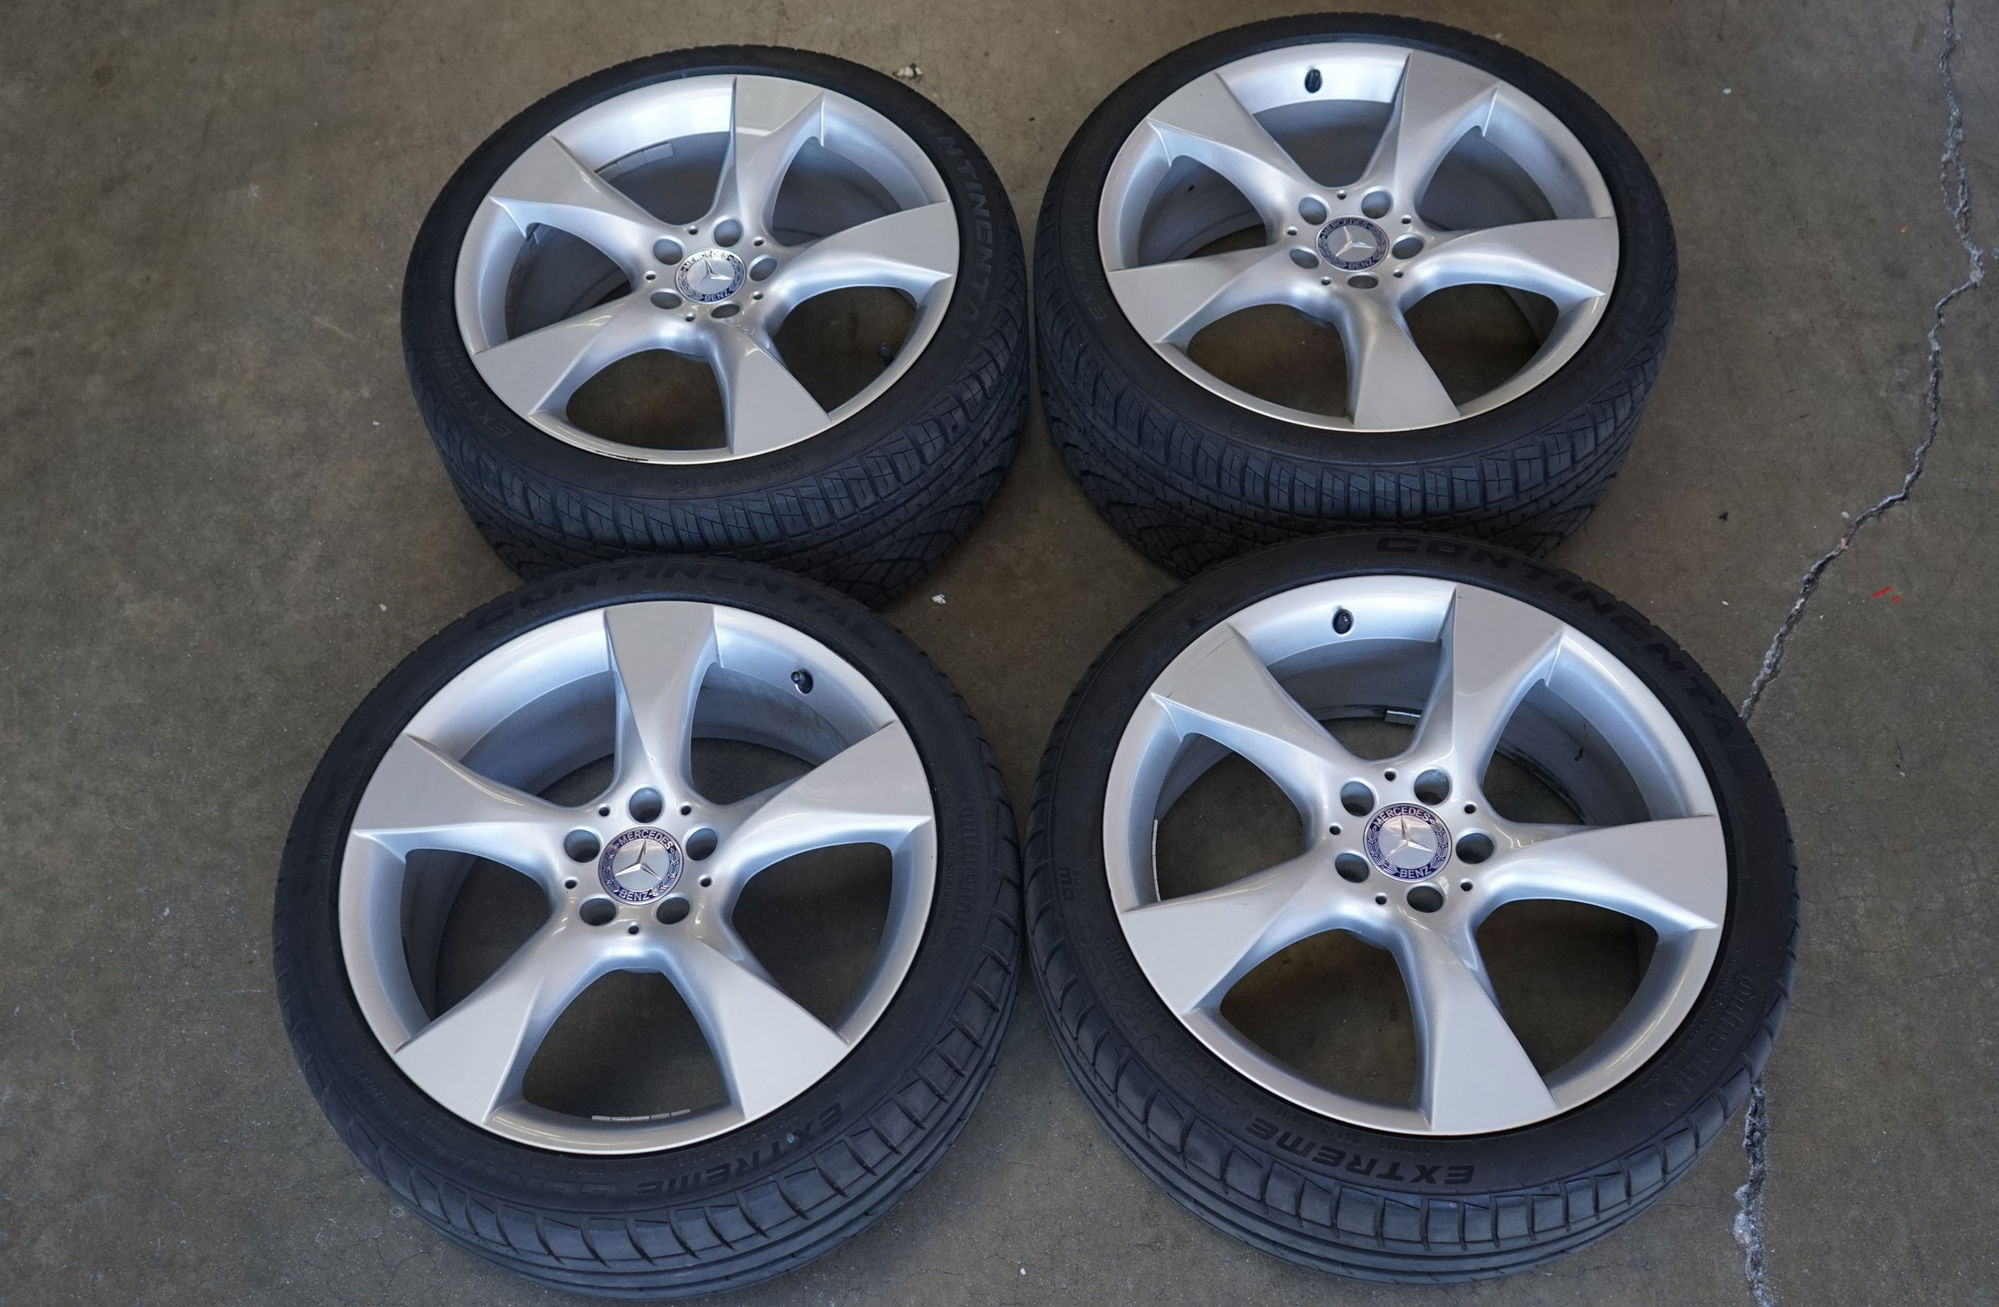 Mercedes benz oem wheels and tires for cls500 cls550 cls55 for Mercedes benz oem wheels